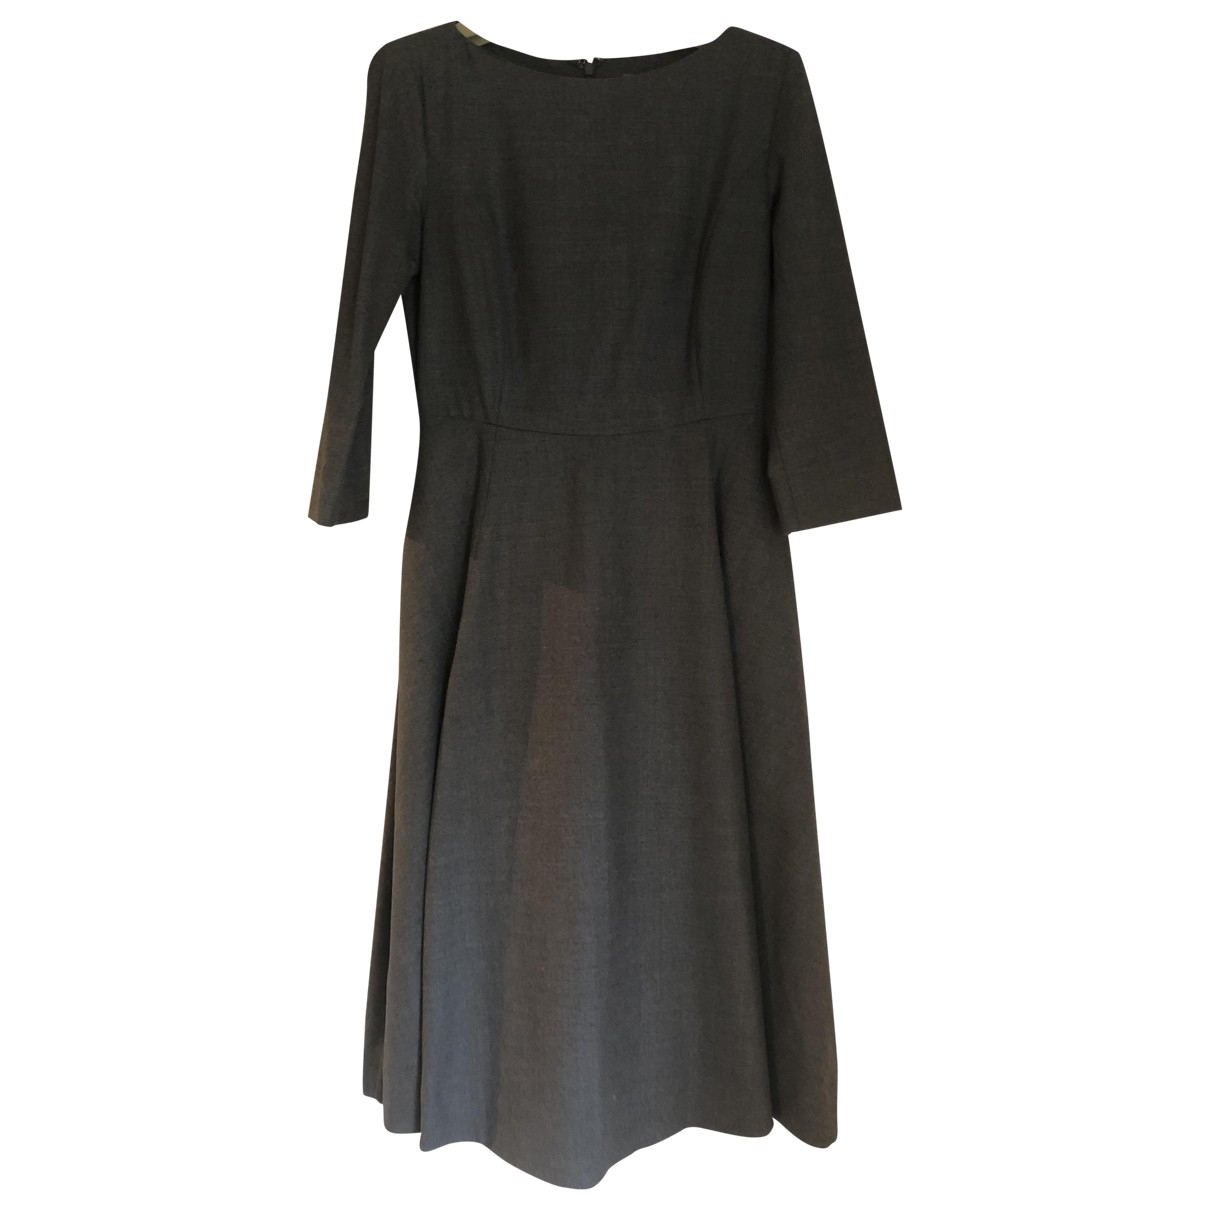 Cos \N Kleid in  Grau Wolle